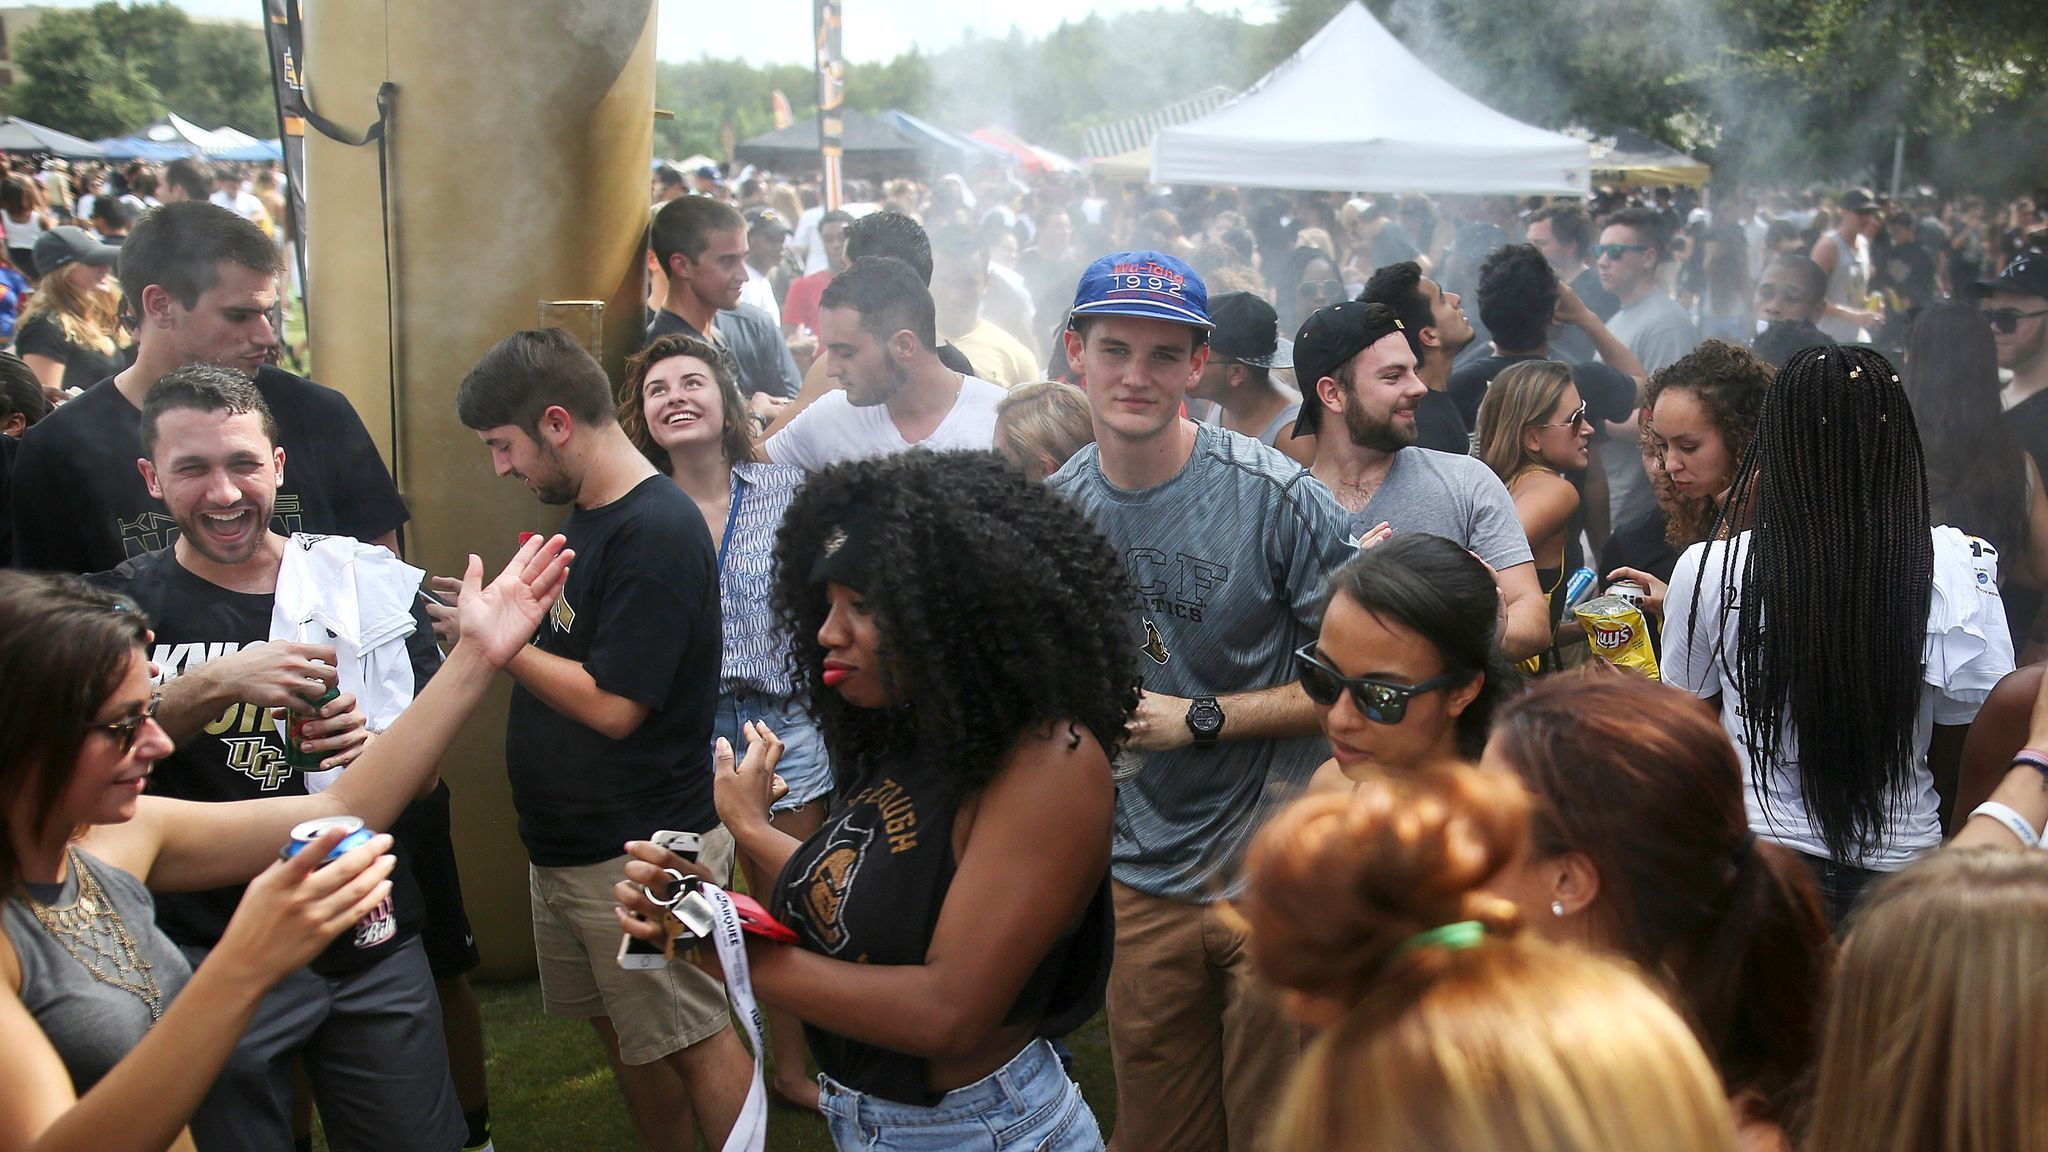 Tailgating at a UCF football game offers raucous party